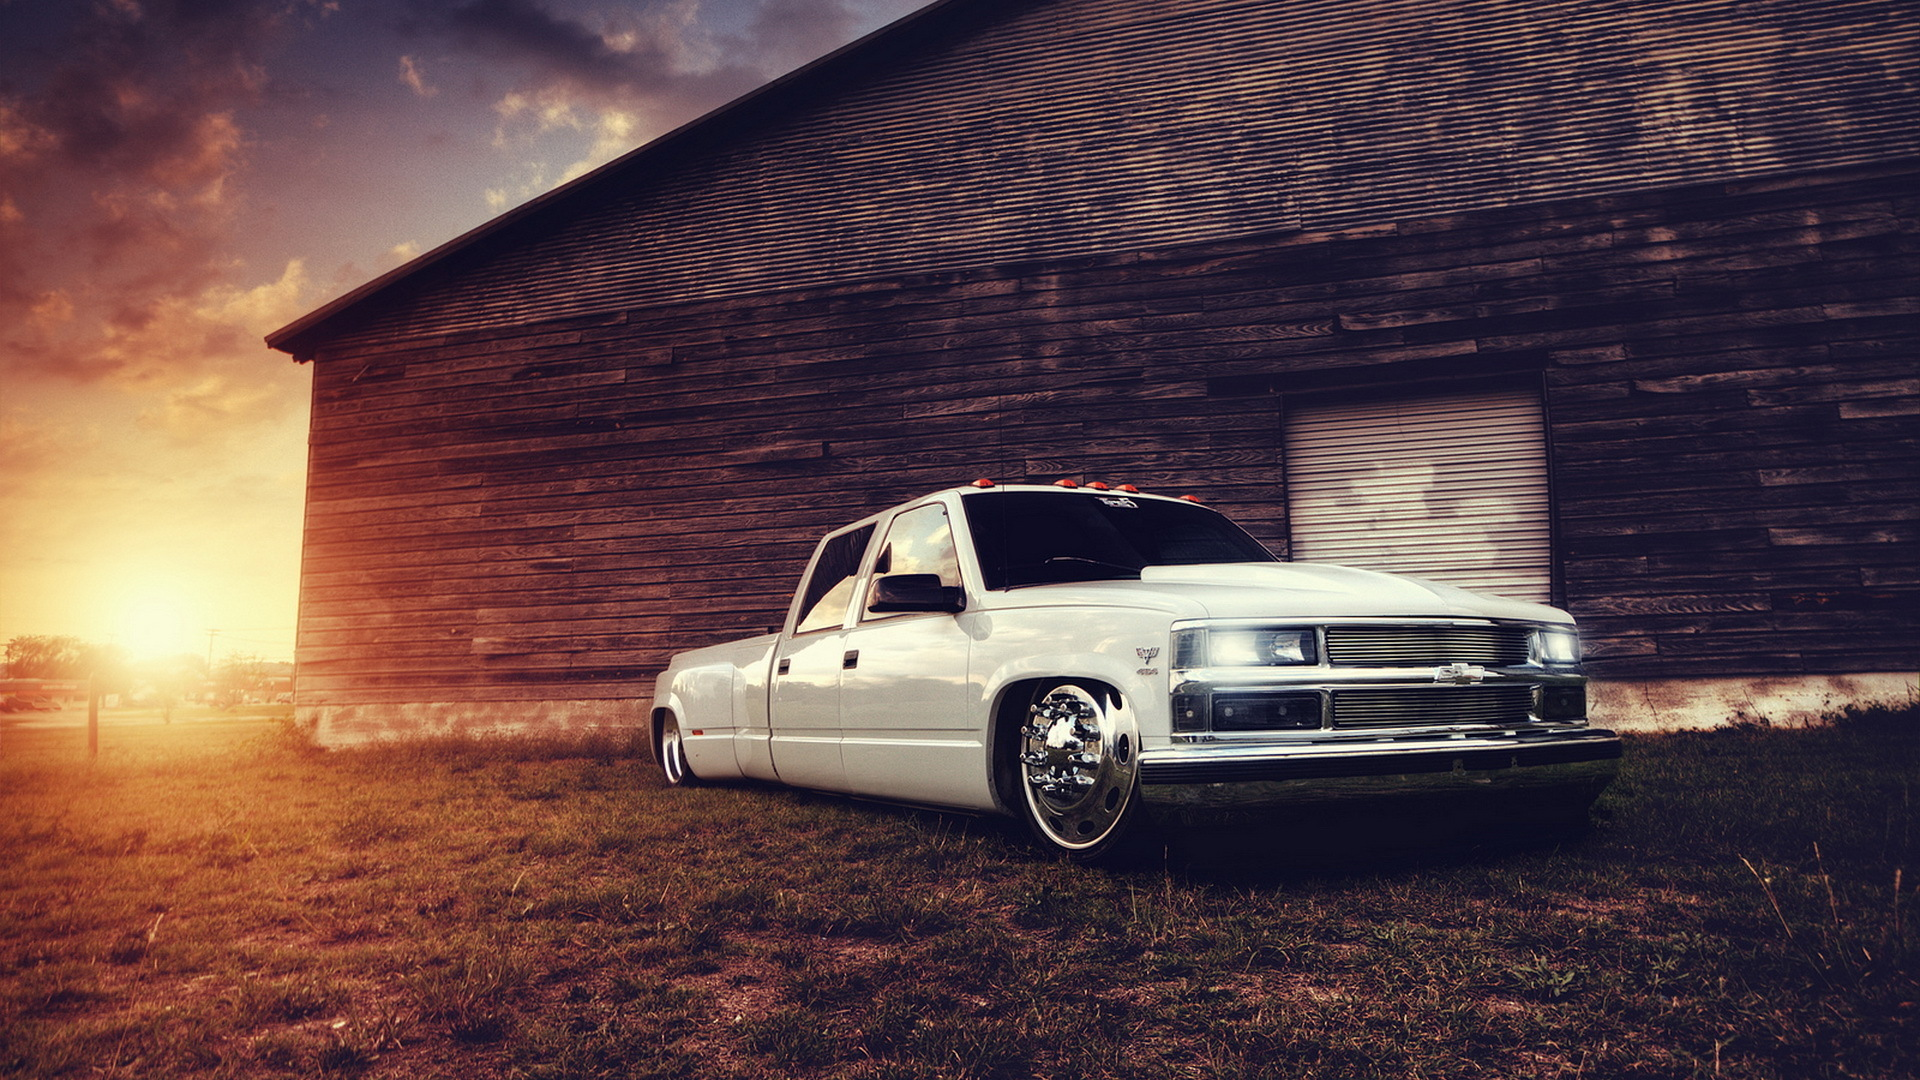 Pictures Lowrider Chevy Truck Classic Hot Rod 1920x1080